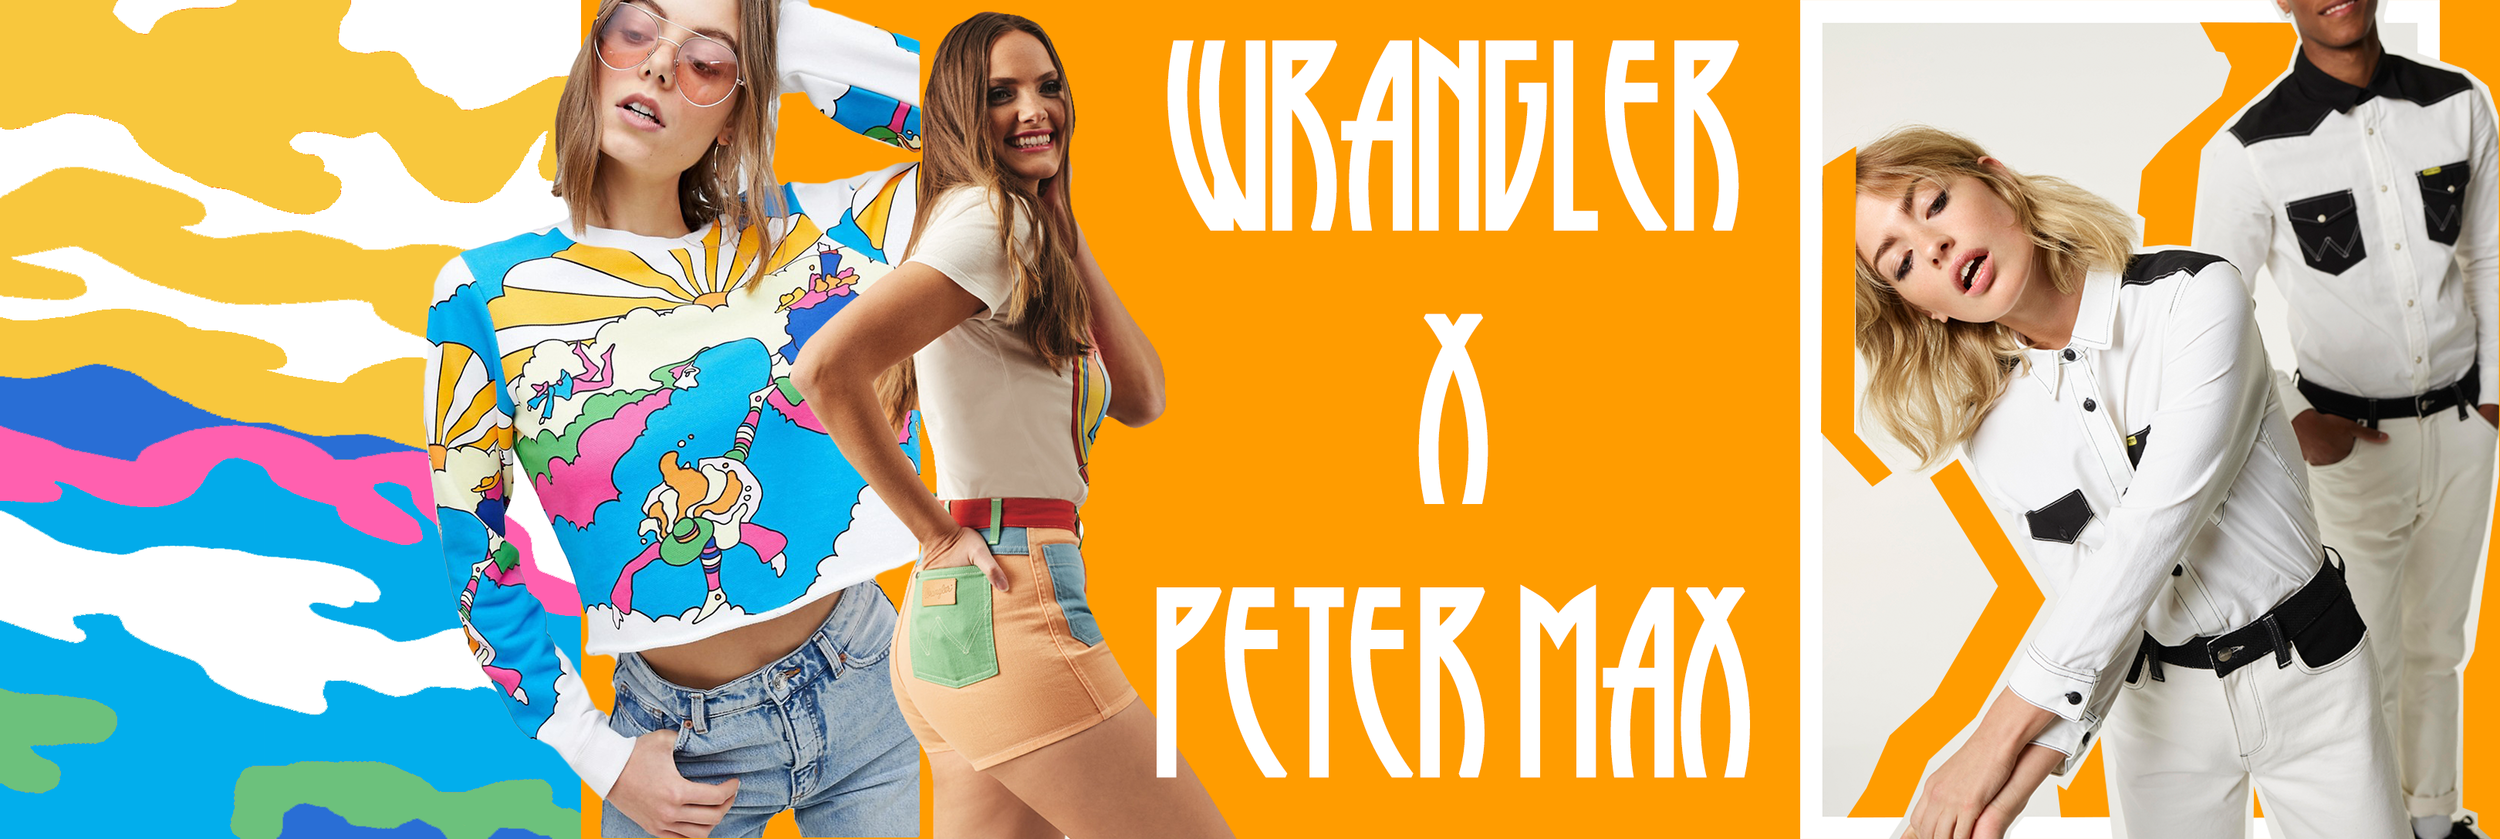 Peter Max for Wrangler, Celebrating 70 years of Wrangler